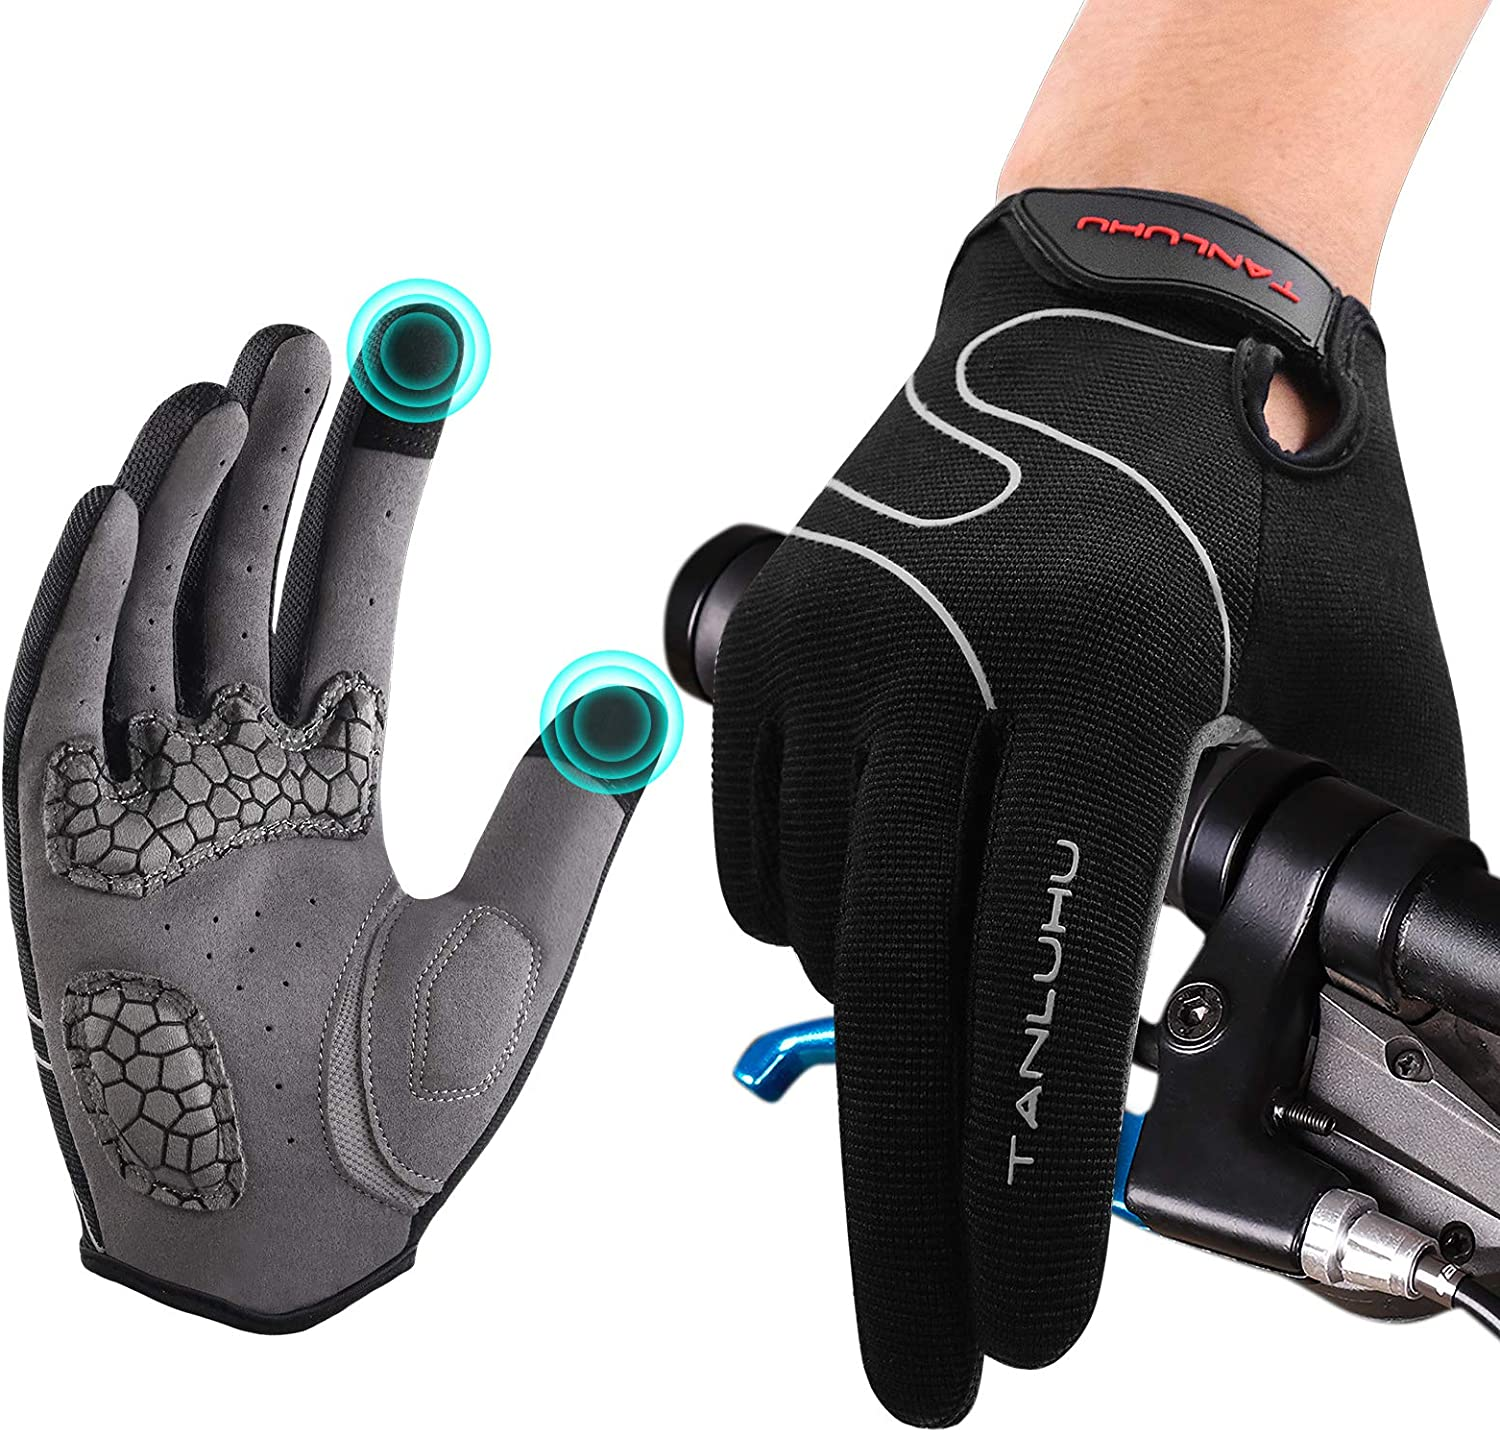 tanluhu winter cycling gloves isolated on white background